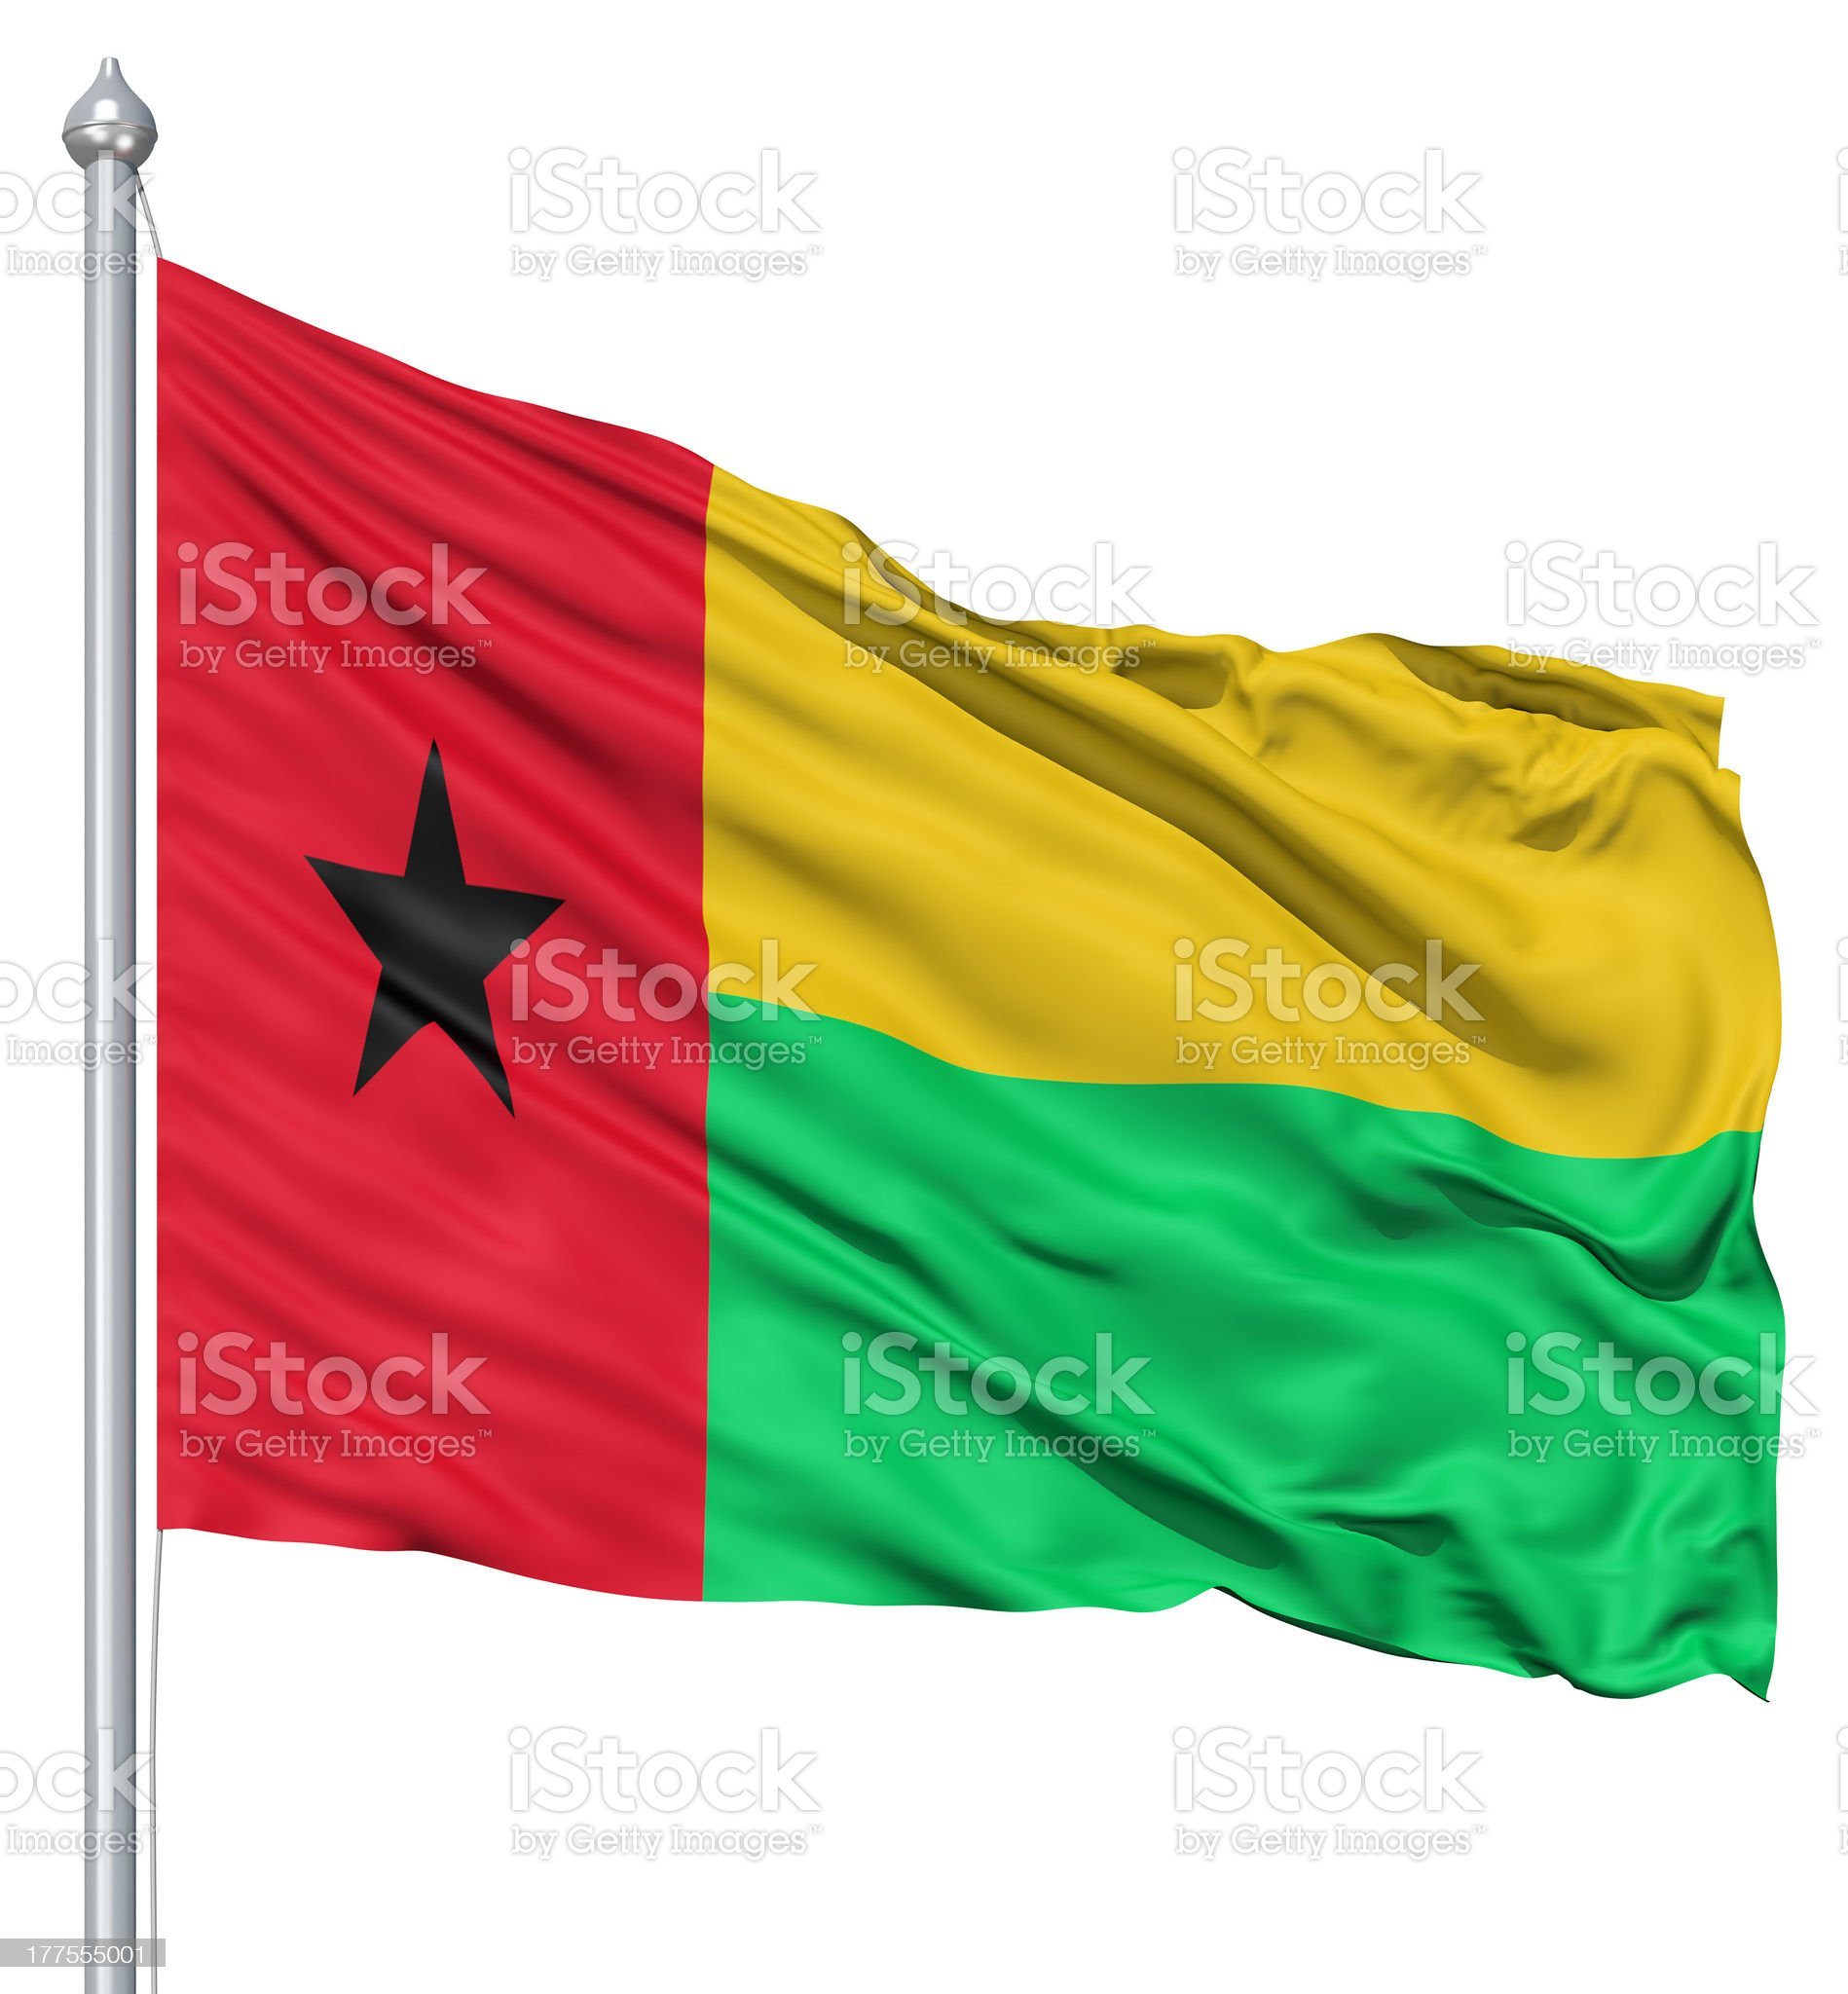 Waving flag of Guinea-Bissau royalty-free stock photo